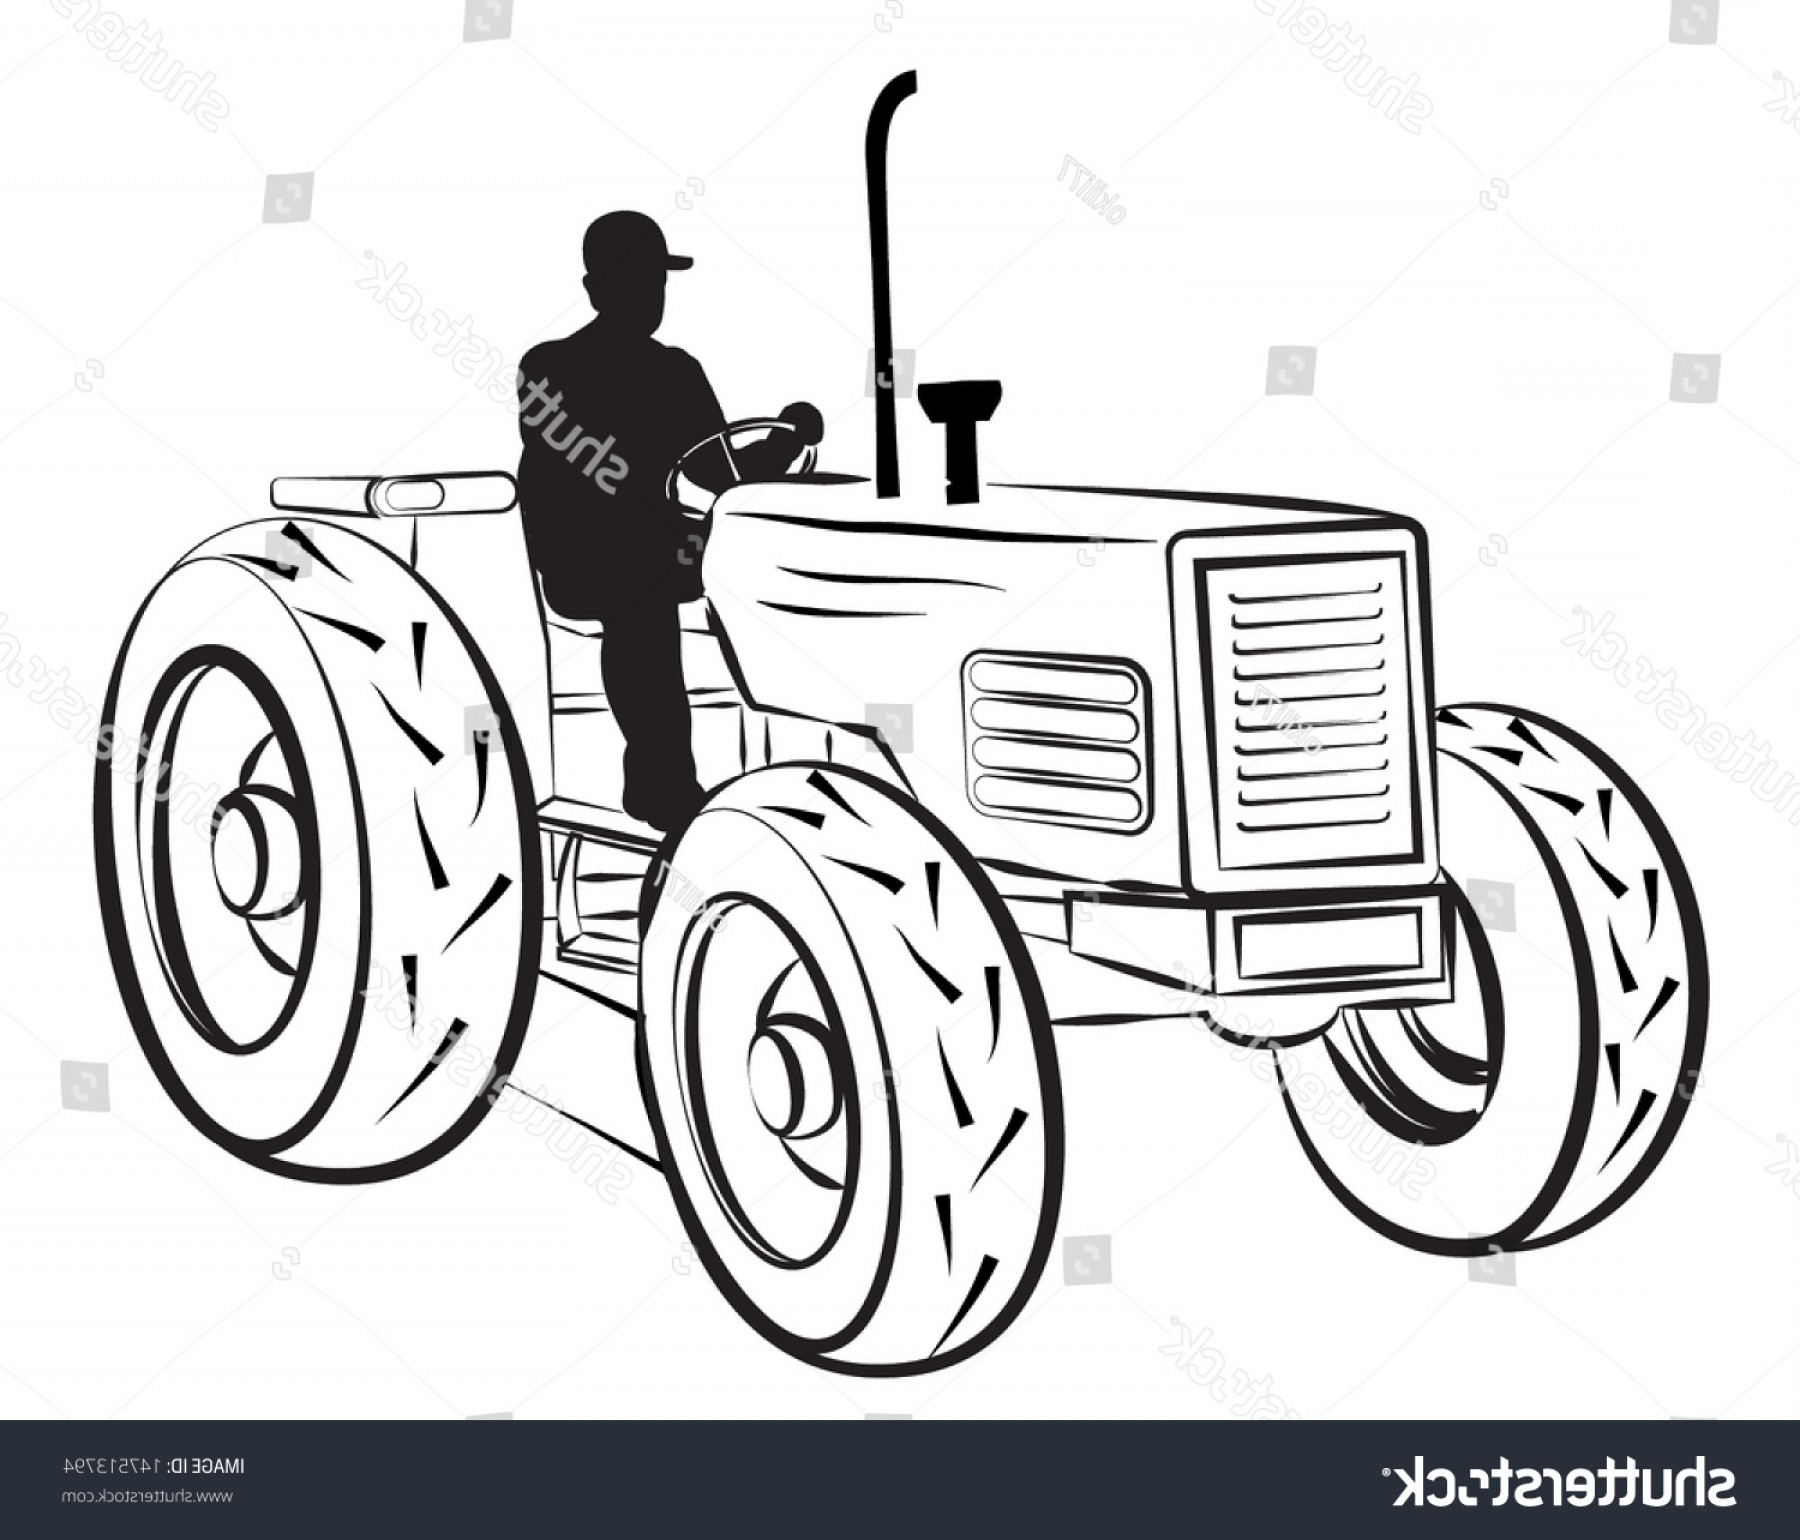 Tractor Silhouette Vector Art: Worker On Tractor Silhouette Outline Vector